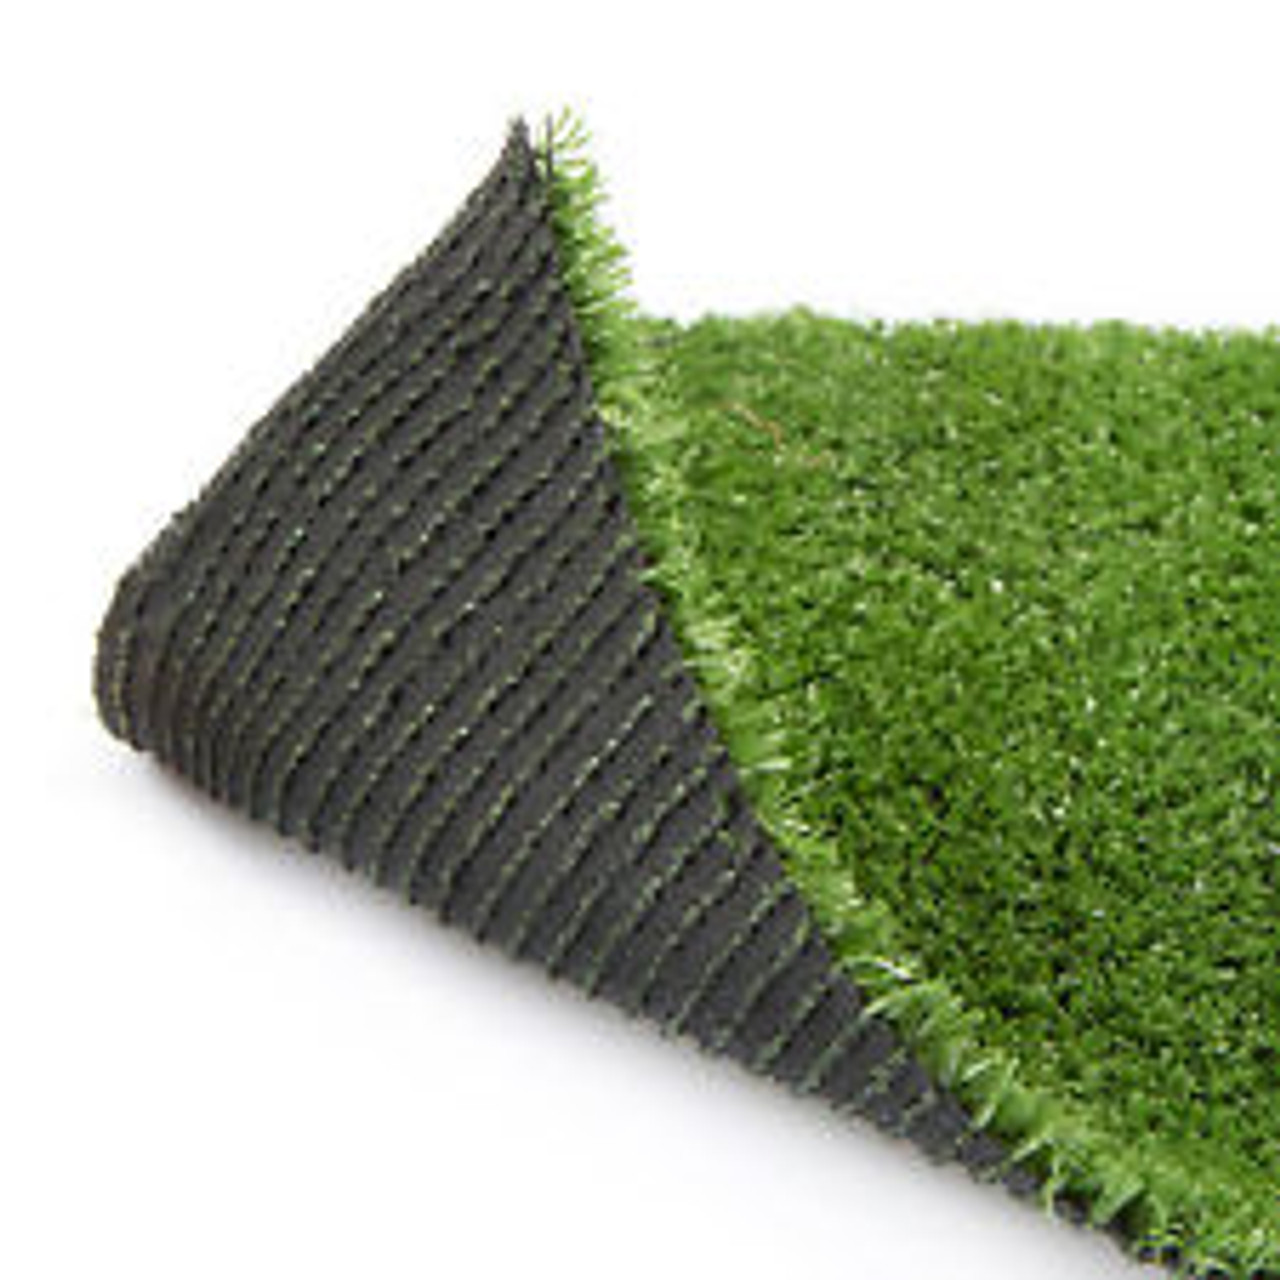 Artificial Grass Mat 3'x6'